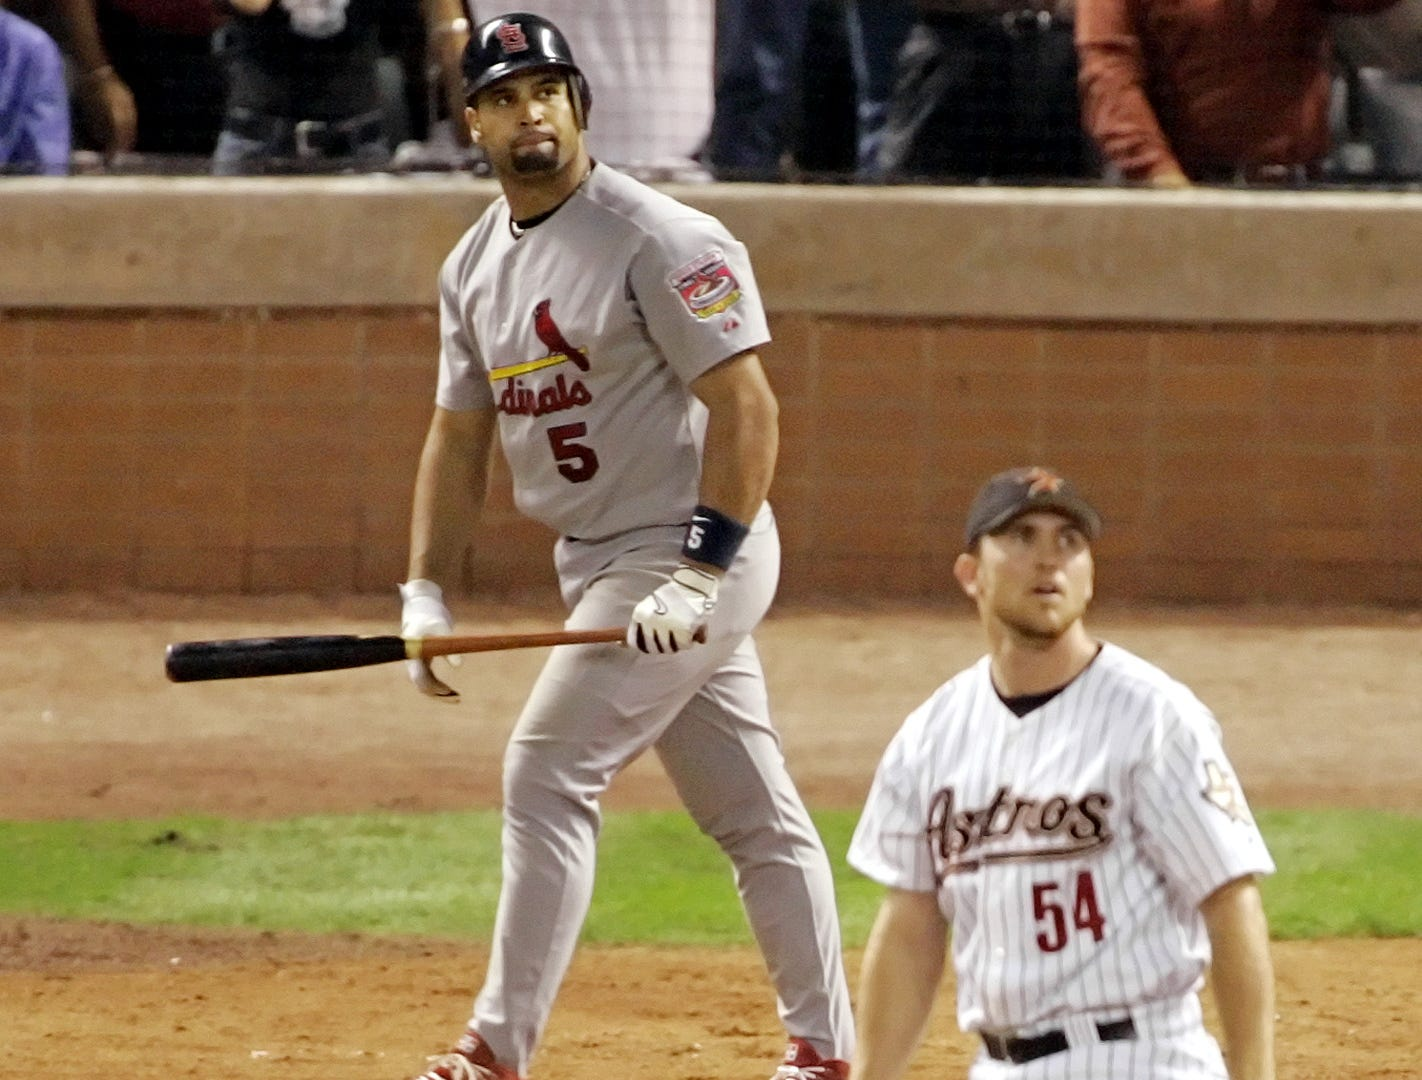 2005 NLCS Game 5: With the Astros on the verge of reaching the World Series, the Cardinals' Albert Pujols crushed a mammoth three-run homer off closer Brad Lidge to put St. Louis ahead in the ninth inning.